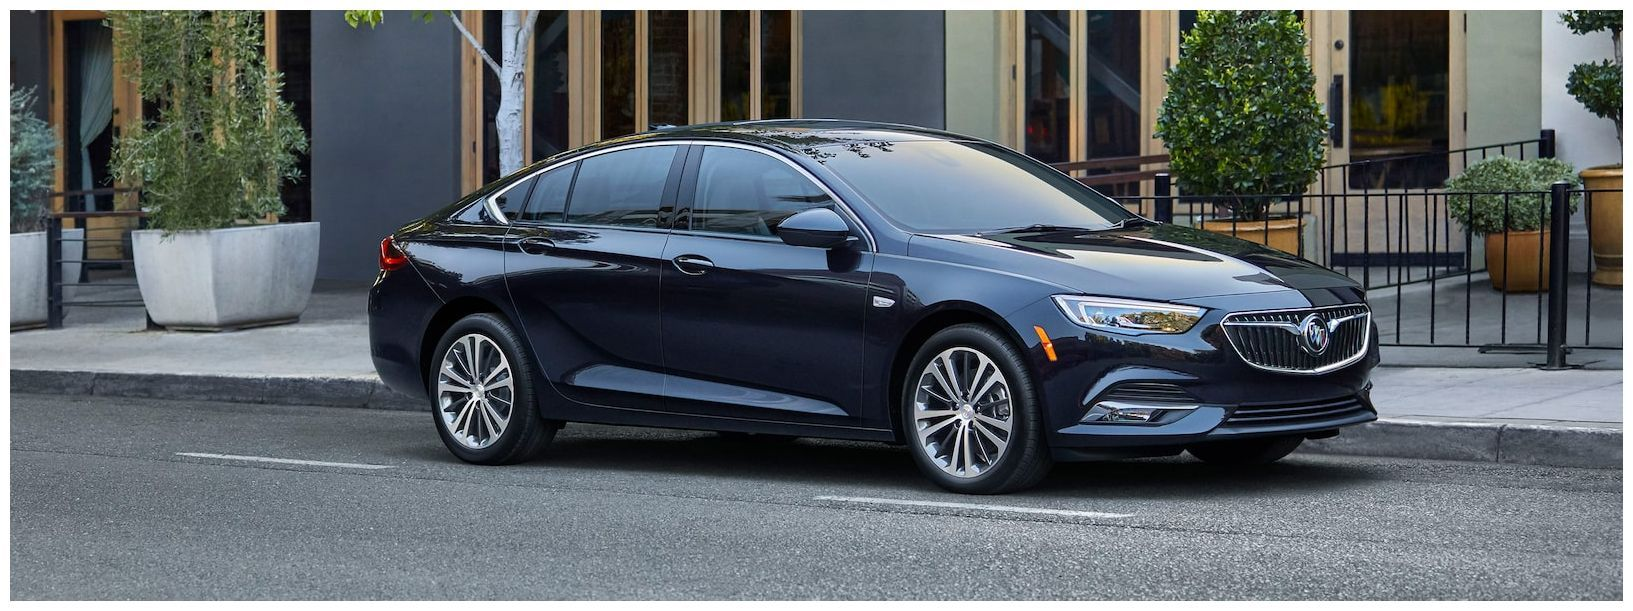 2019 Buick Regal Buick Regal Buick Land Rover Discovery Sport